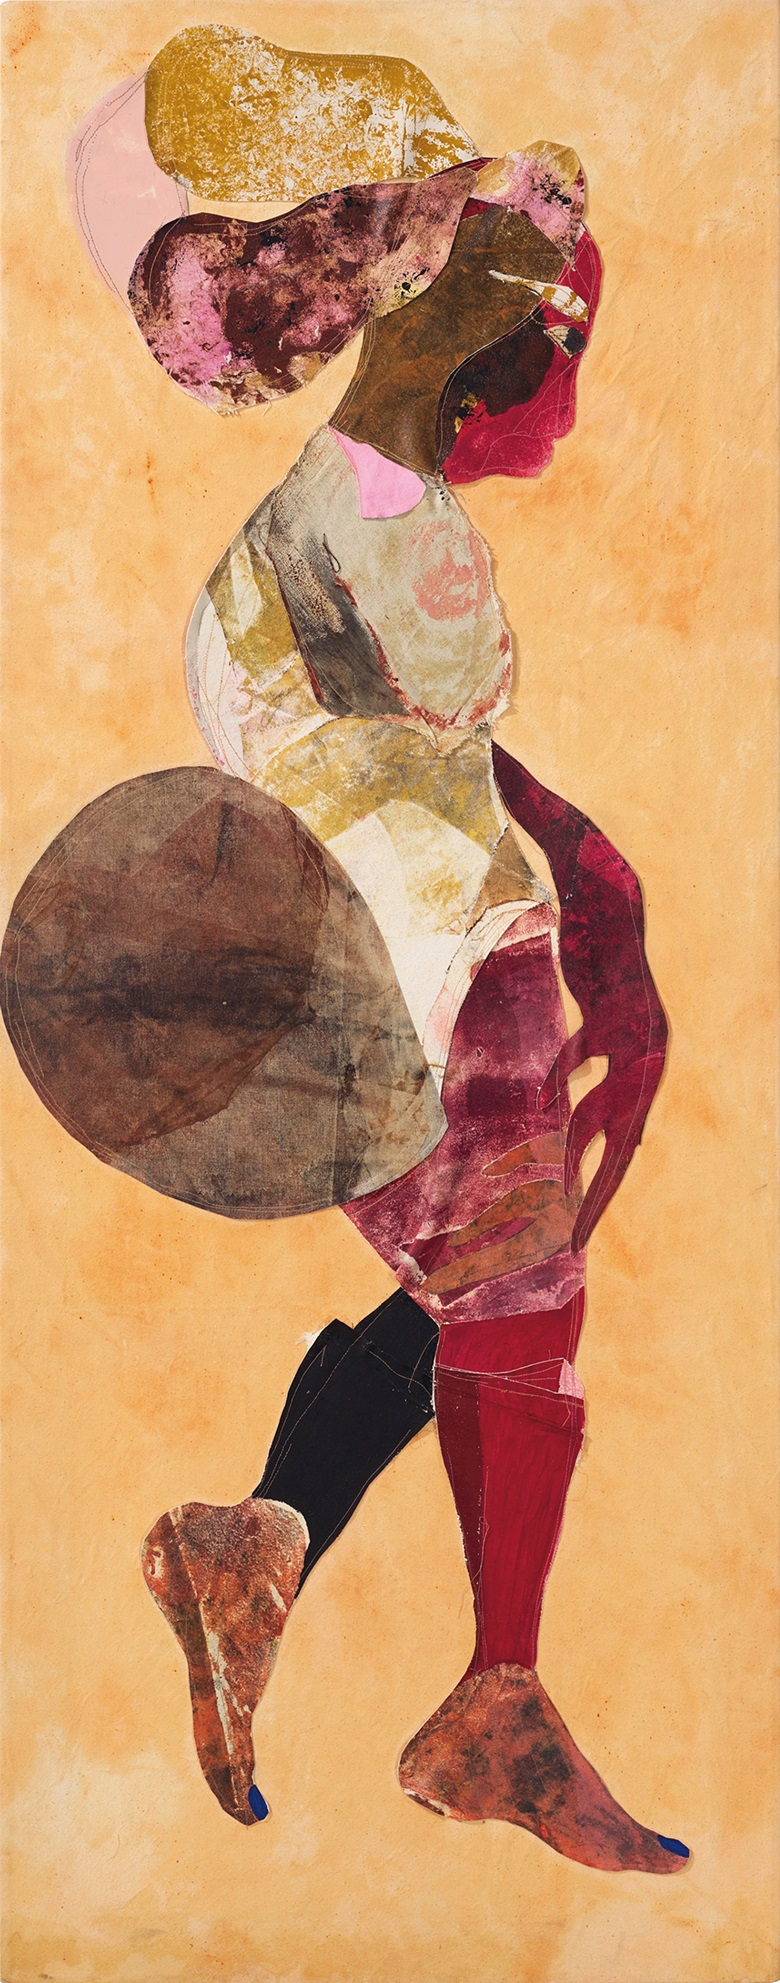 Tschabalala Self, Love to Saartjie, 2015. Oil, acrylic and dye on canvas. 26 x 66 in (66 x 168 cm). Estimate £50,000-70,000. Offered in the Post-War and Contemporary Art Day Sale on 13 February 2020 at Christie's in London